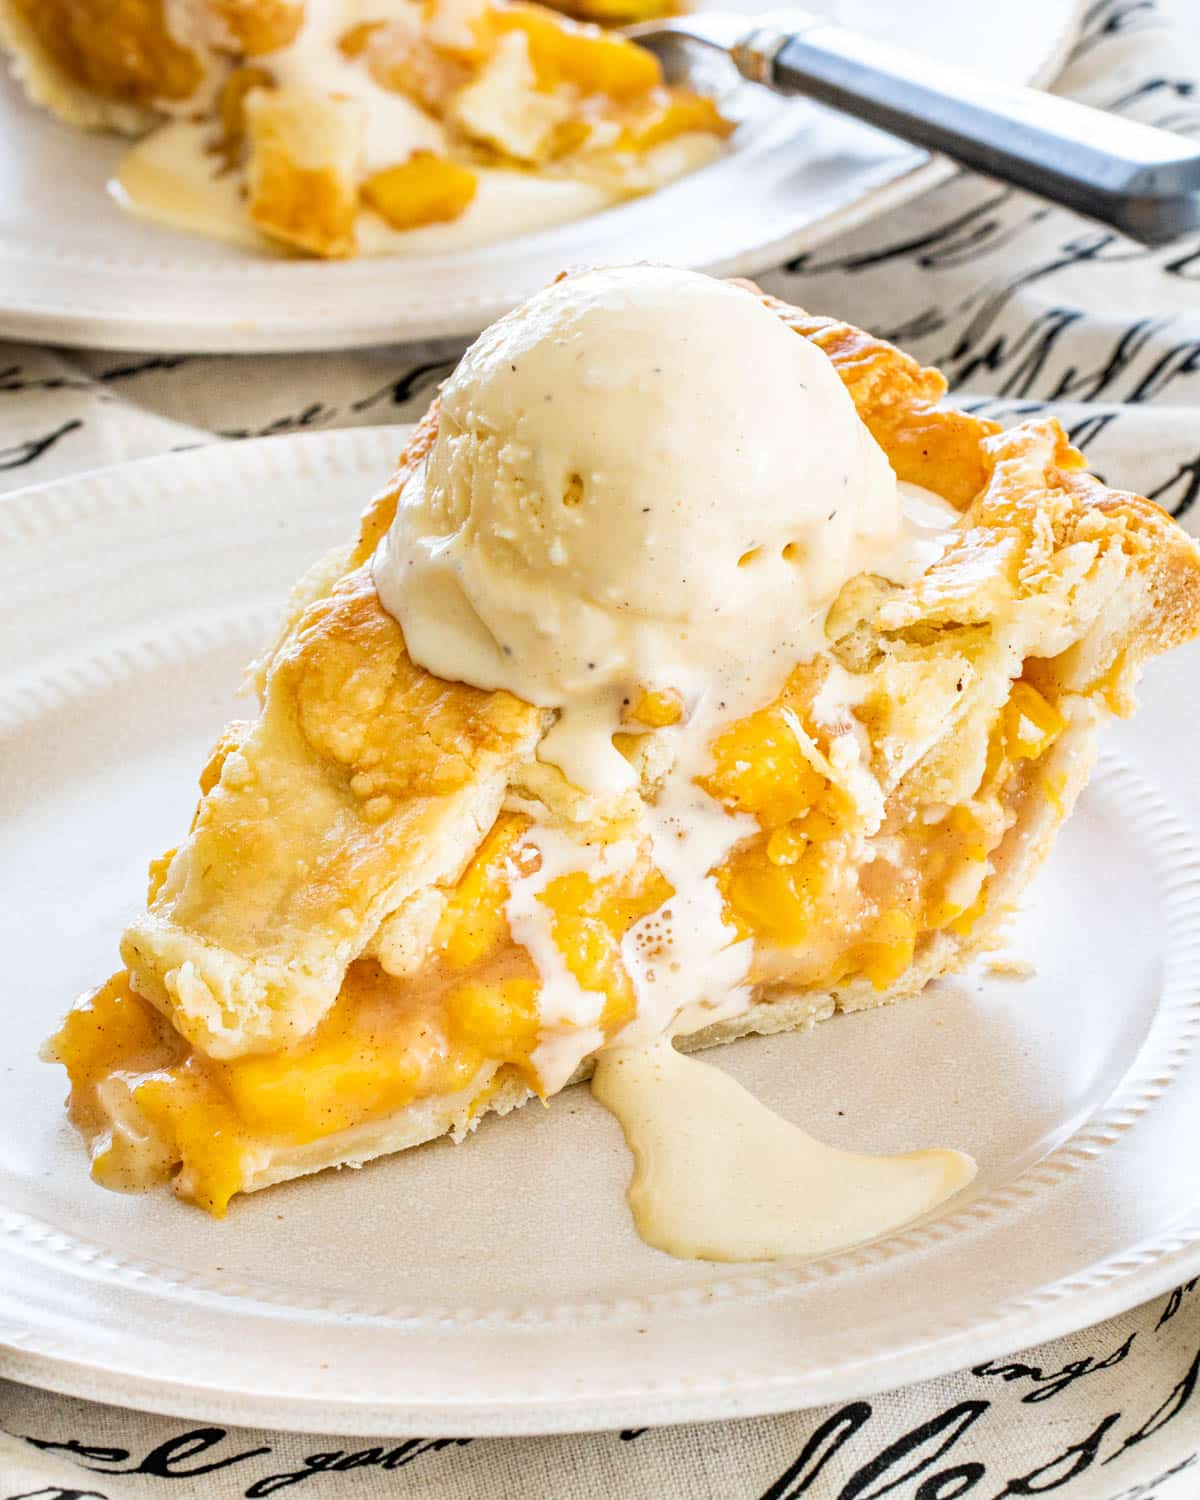 a slice of peach pie topped with vanilla ice cream